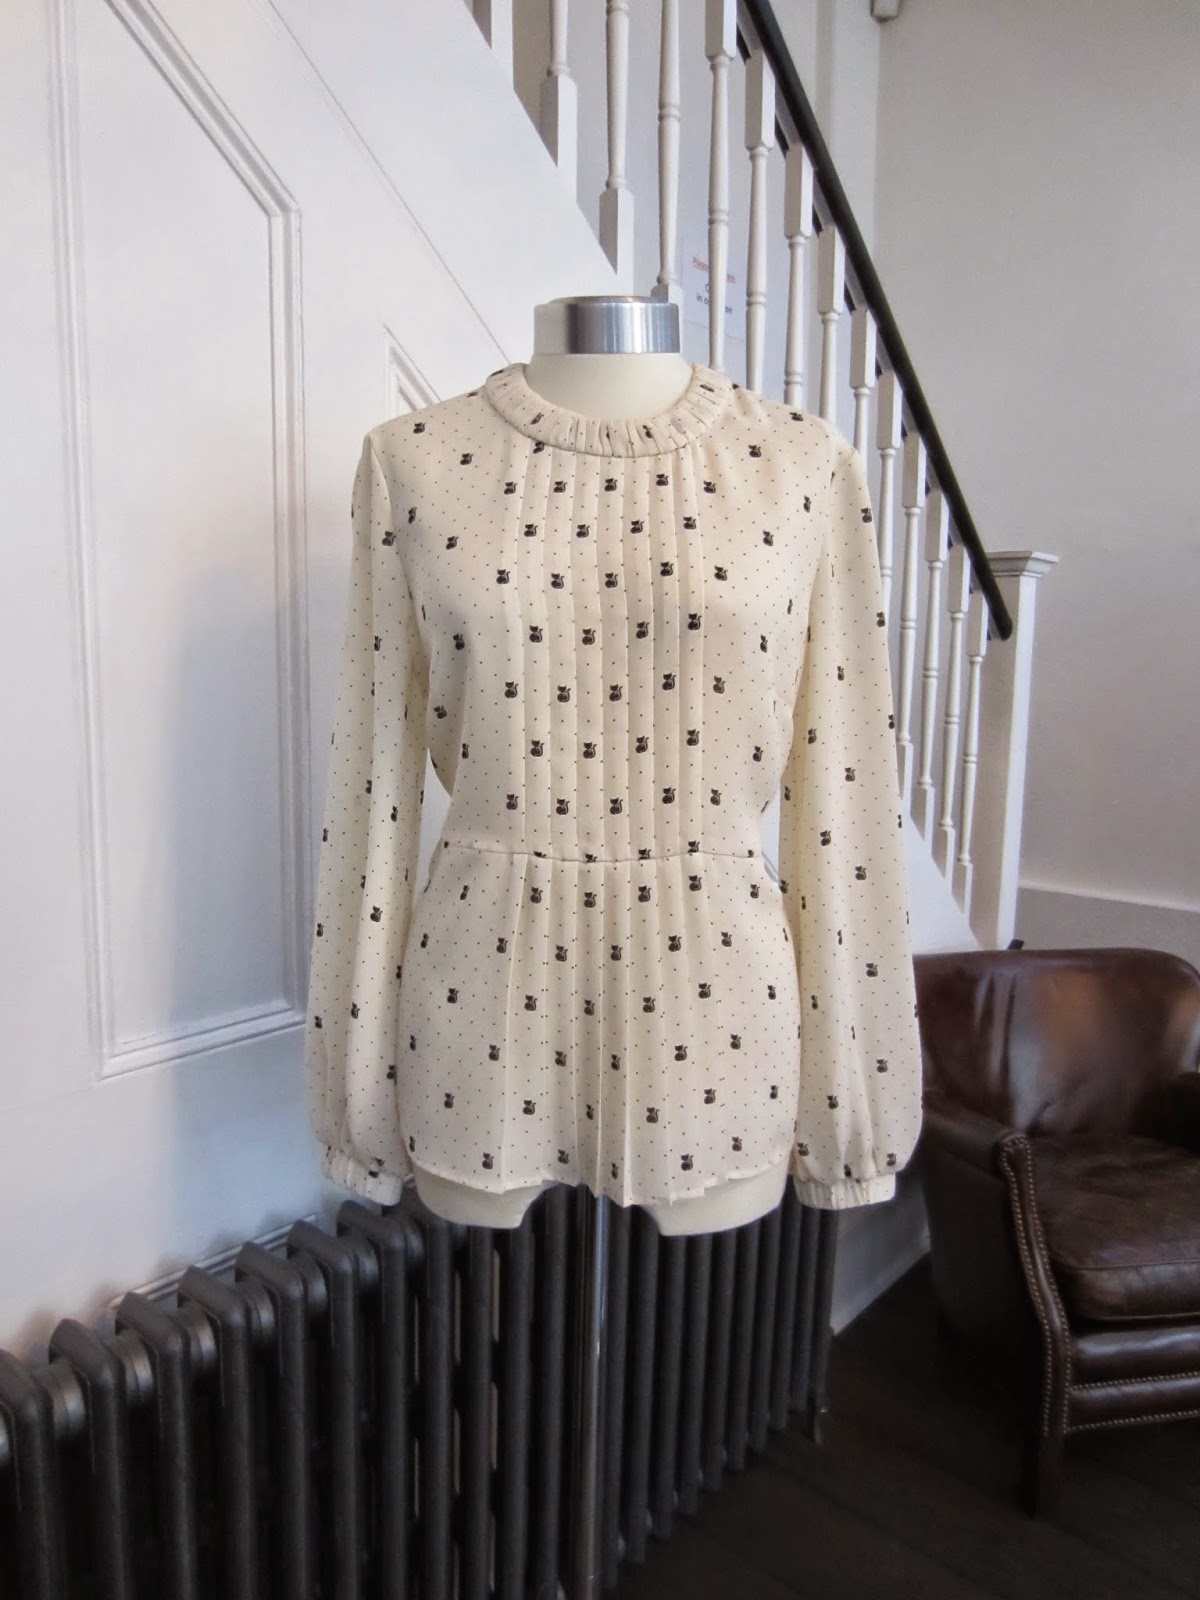 Orla Kiely Cream Blouse with Black Cat Print